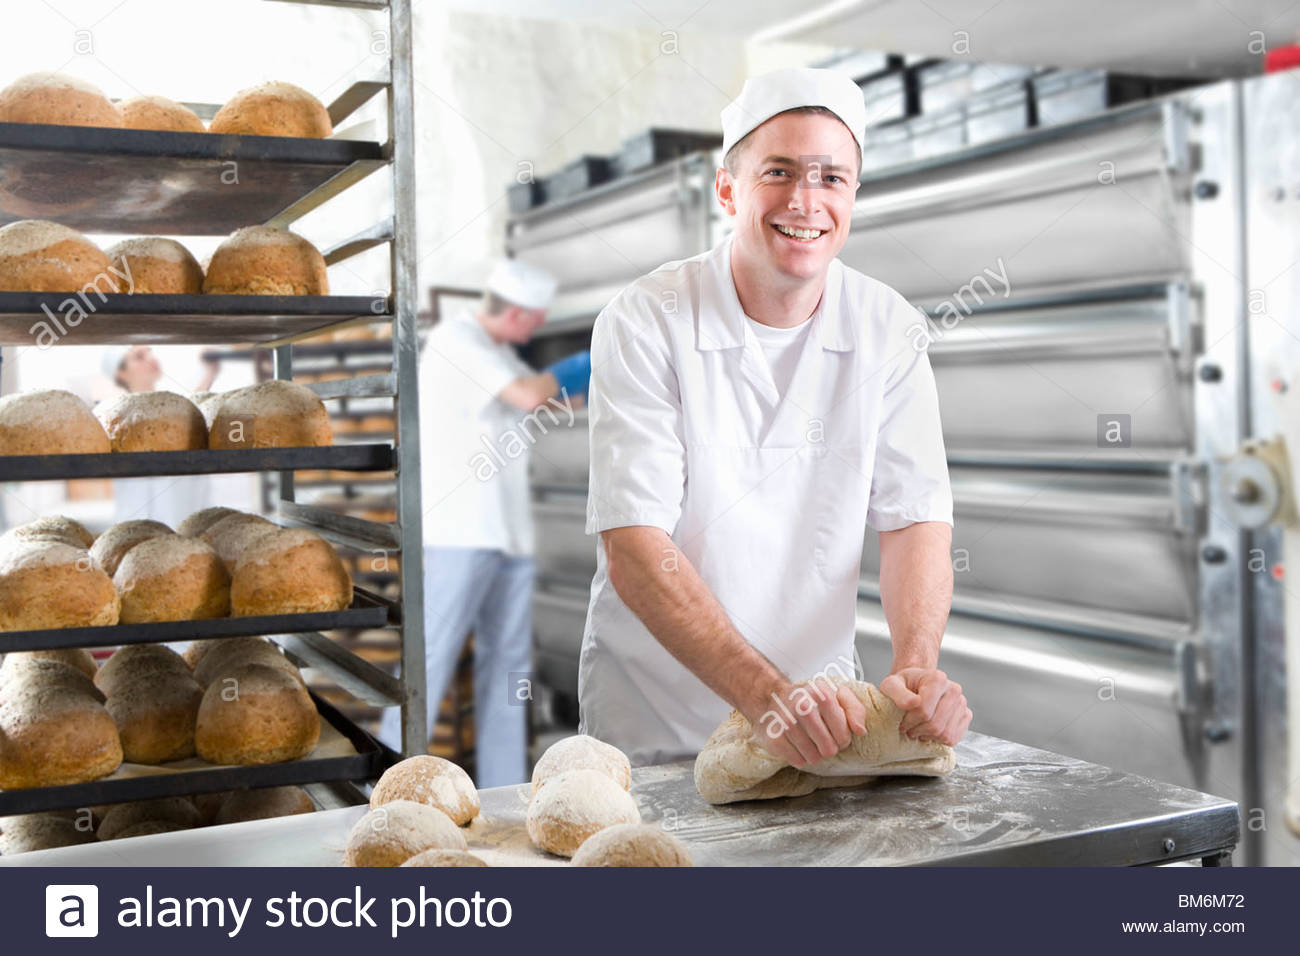 Baker kneading bread dough in bakery Stock Photo, Royalty Free Image: 29651078 - Alamy